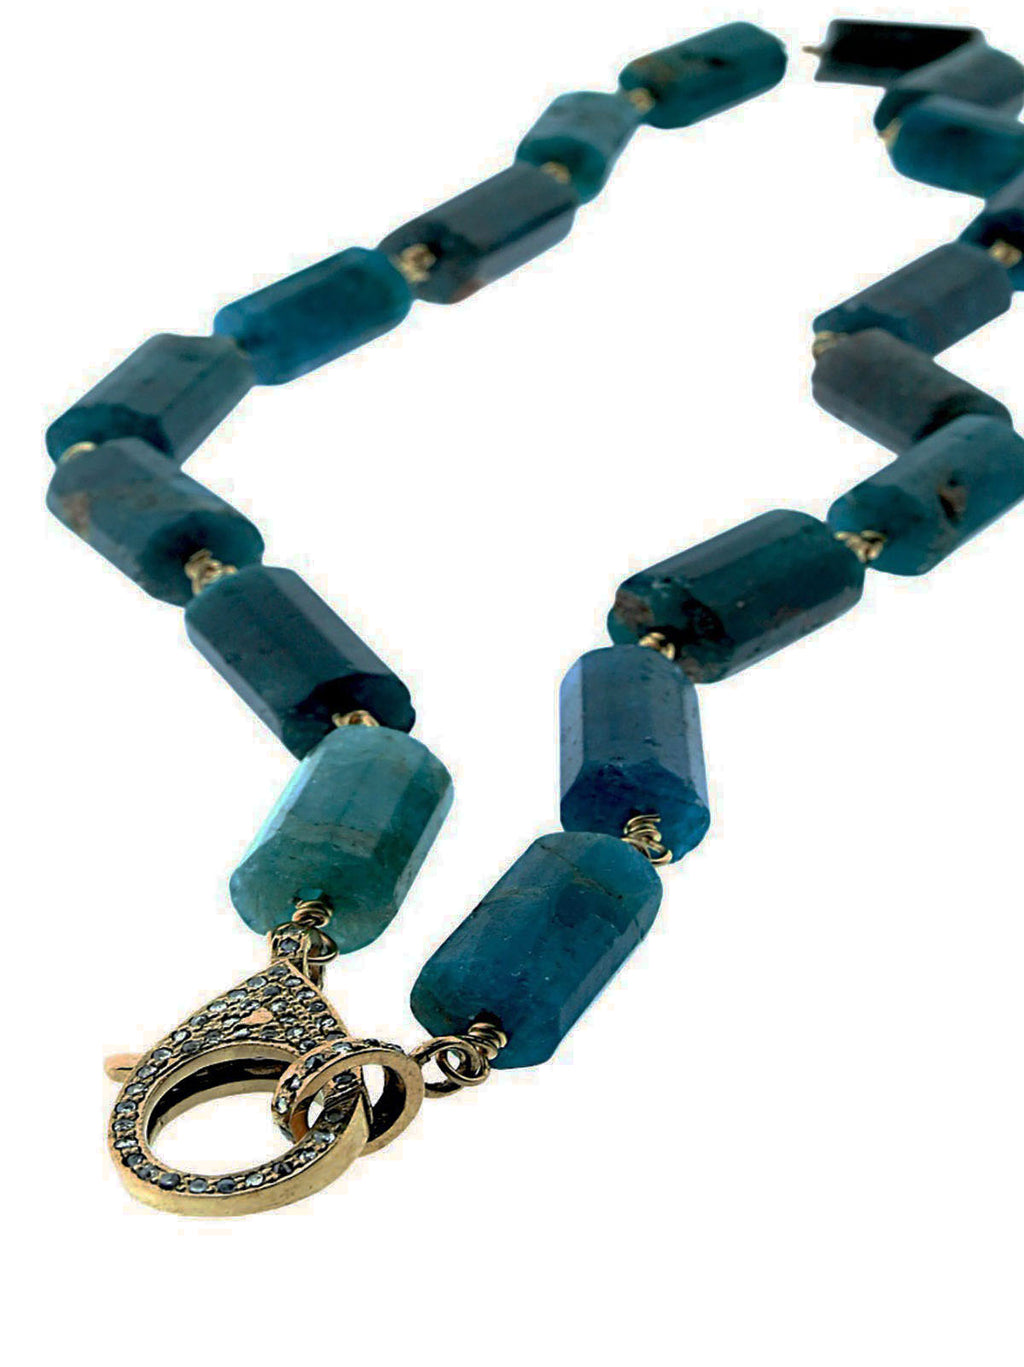 Apatite Cylinder Beads Wire Wrapped in Brass with Pave Diamond Clip.